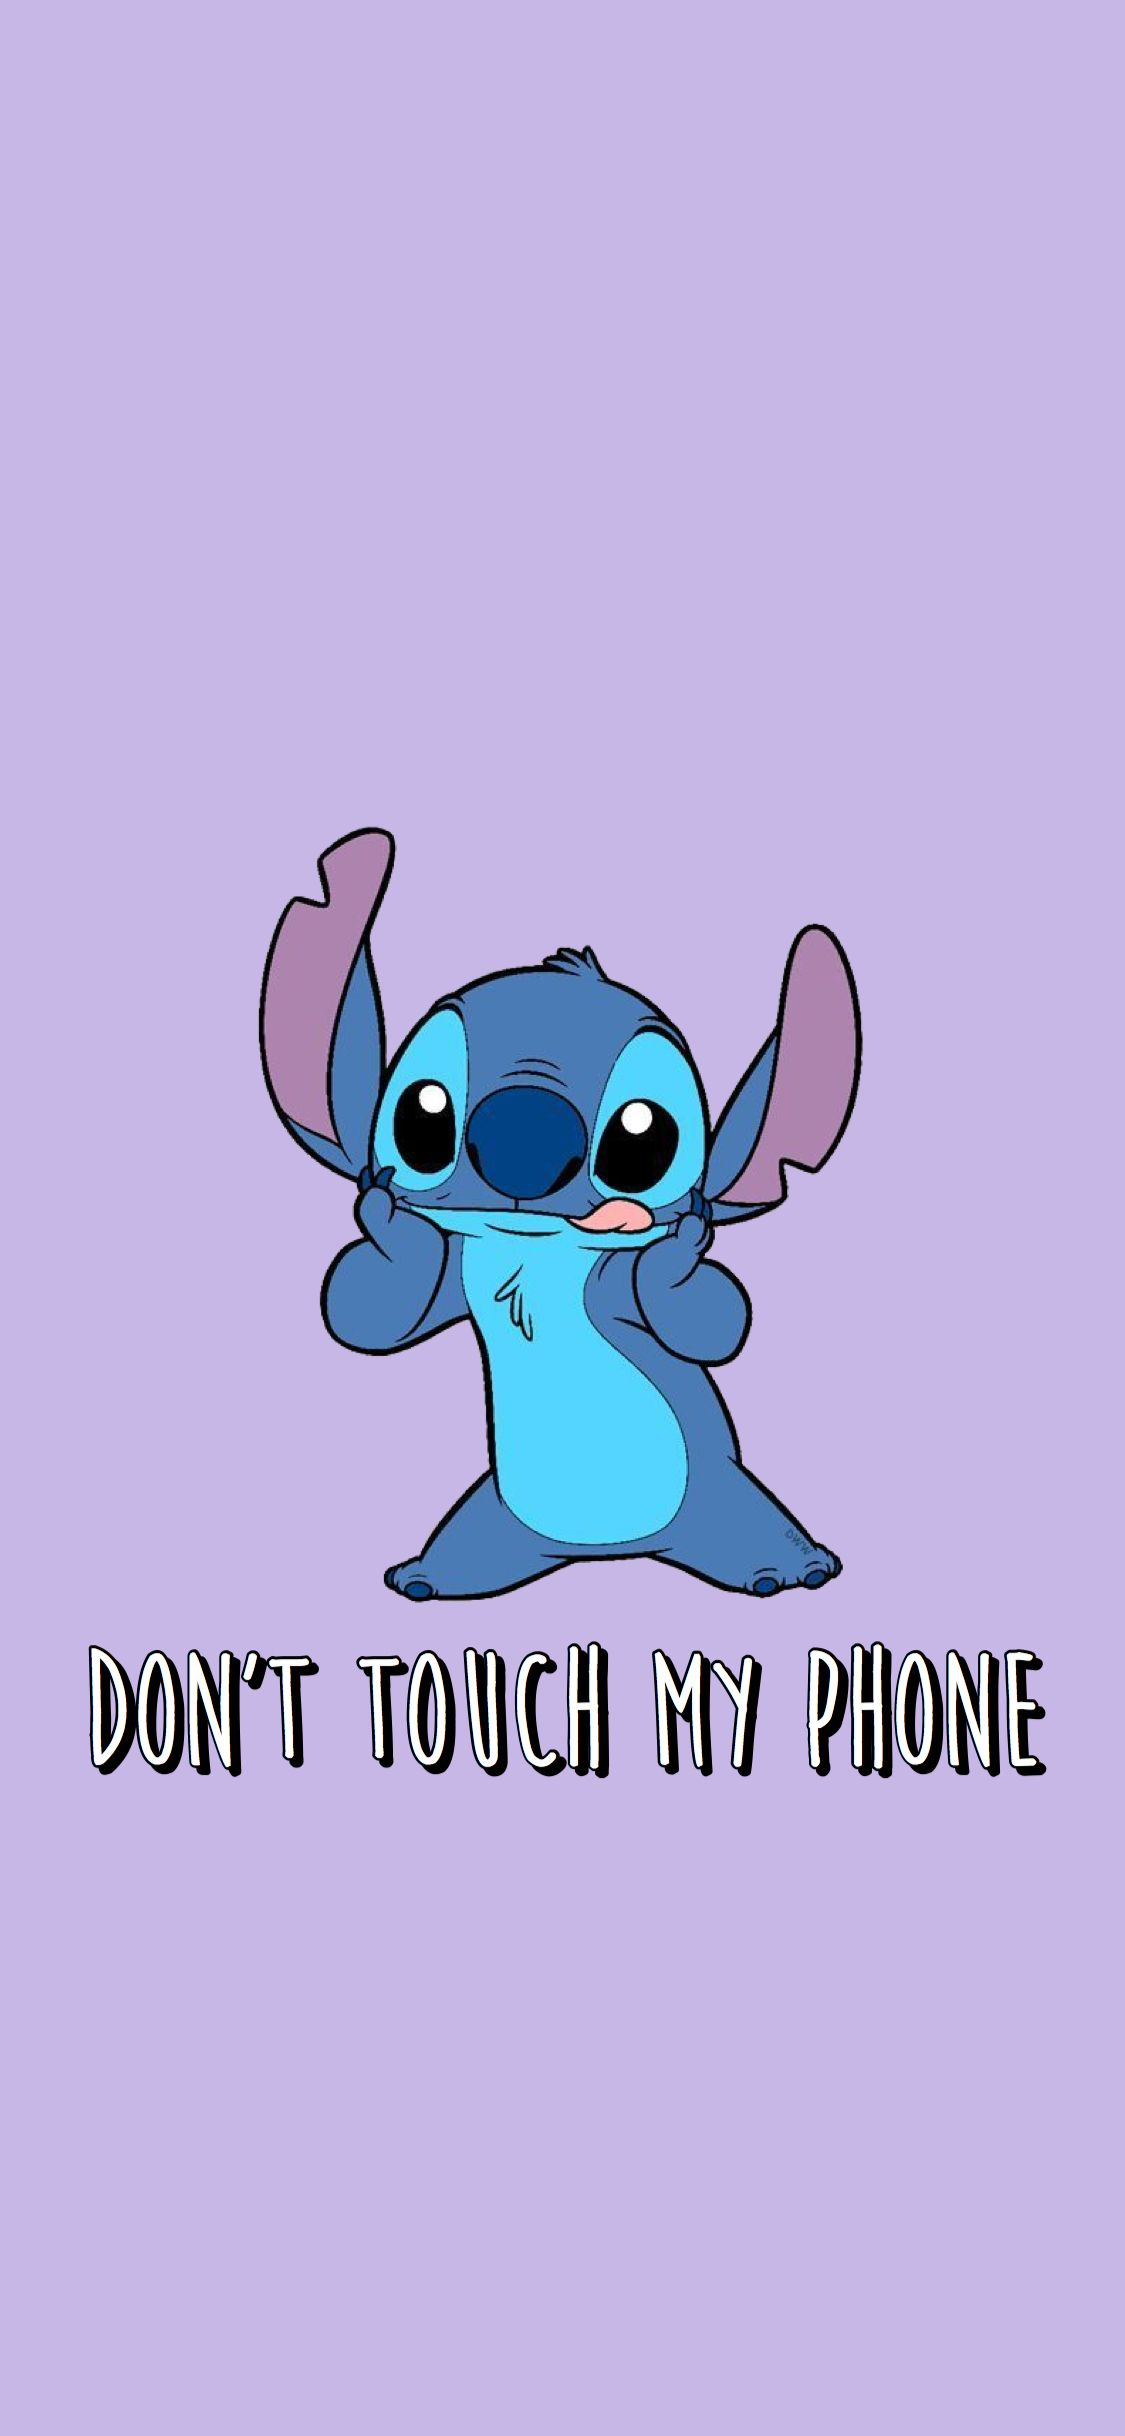 Stitch Wallpaper Screensaver Dont Touch My Phone Wallpapers Funny Phone Wallpaper Funny Iphone Wallpaper